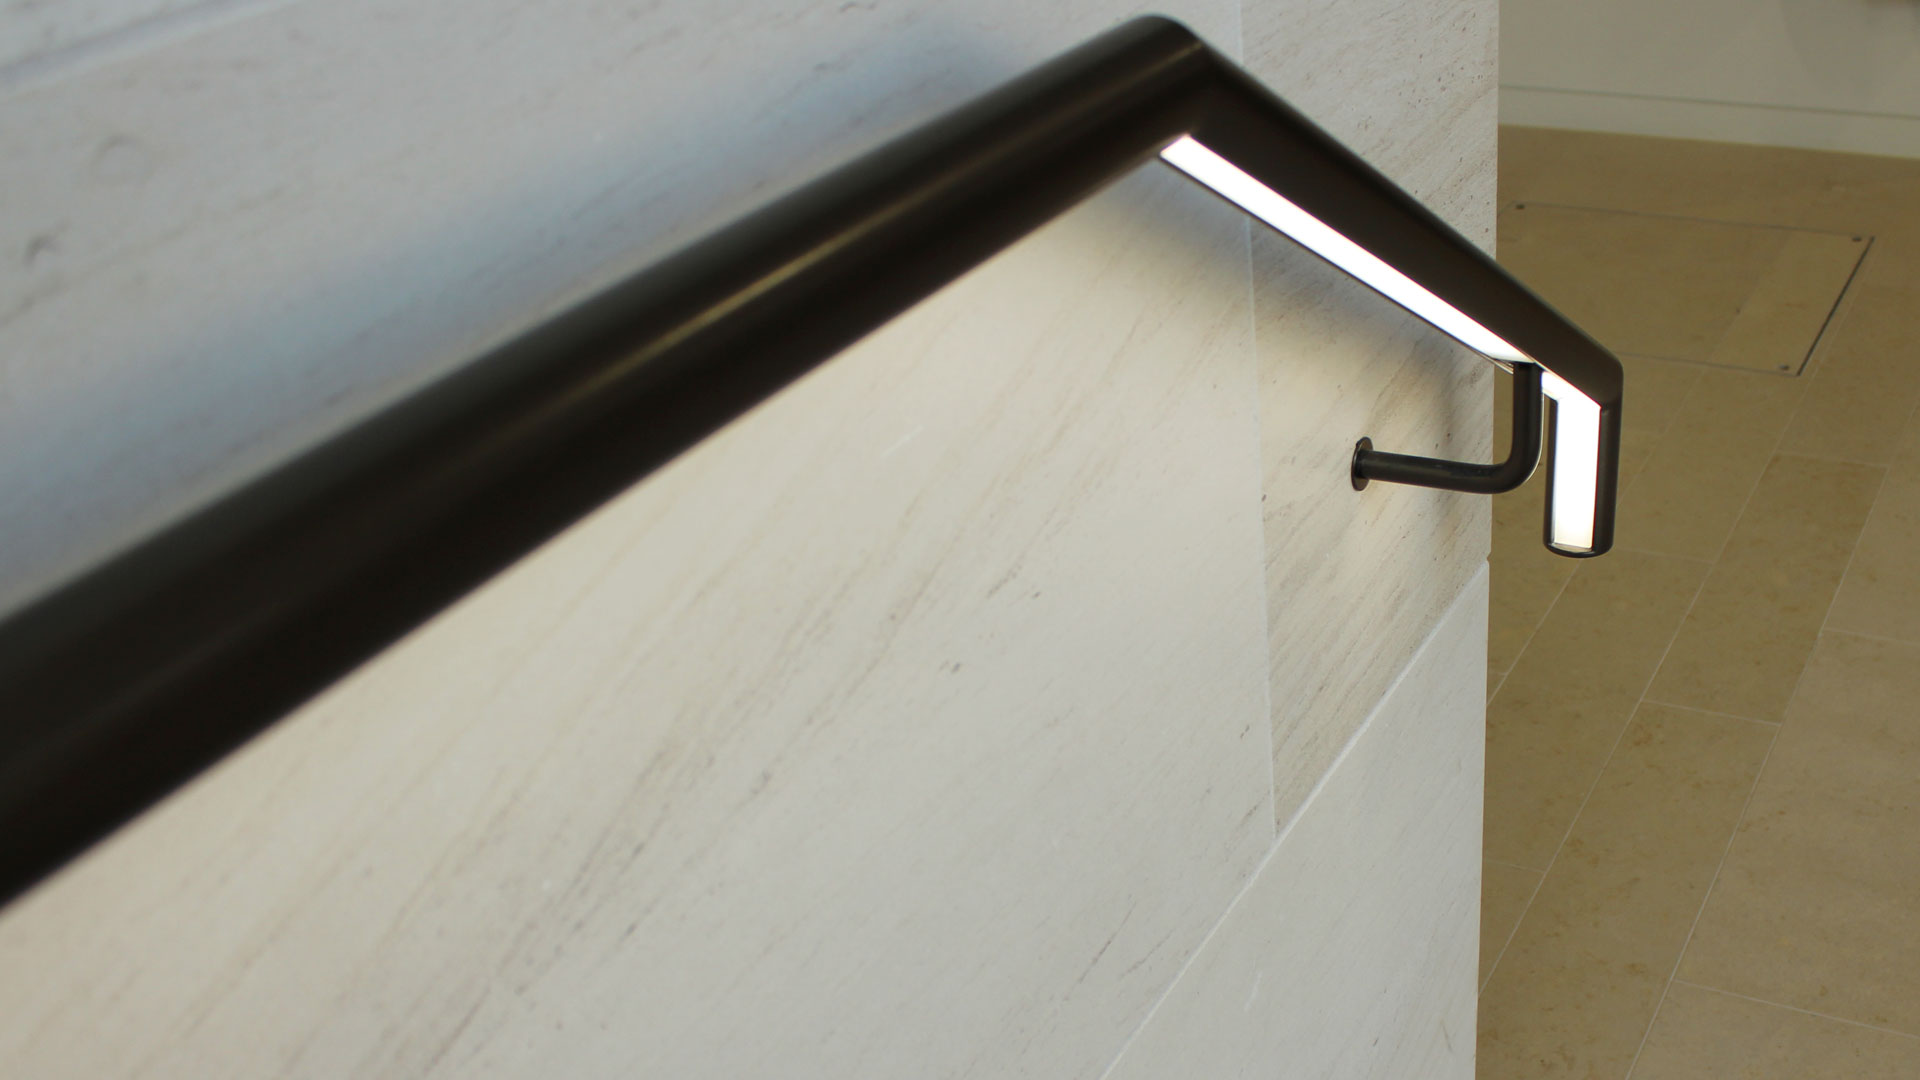 Private school lighting | Illuminated handrail Glowrail | The Light Lab